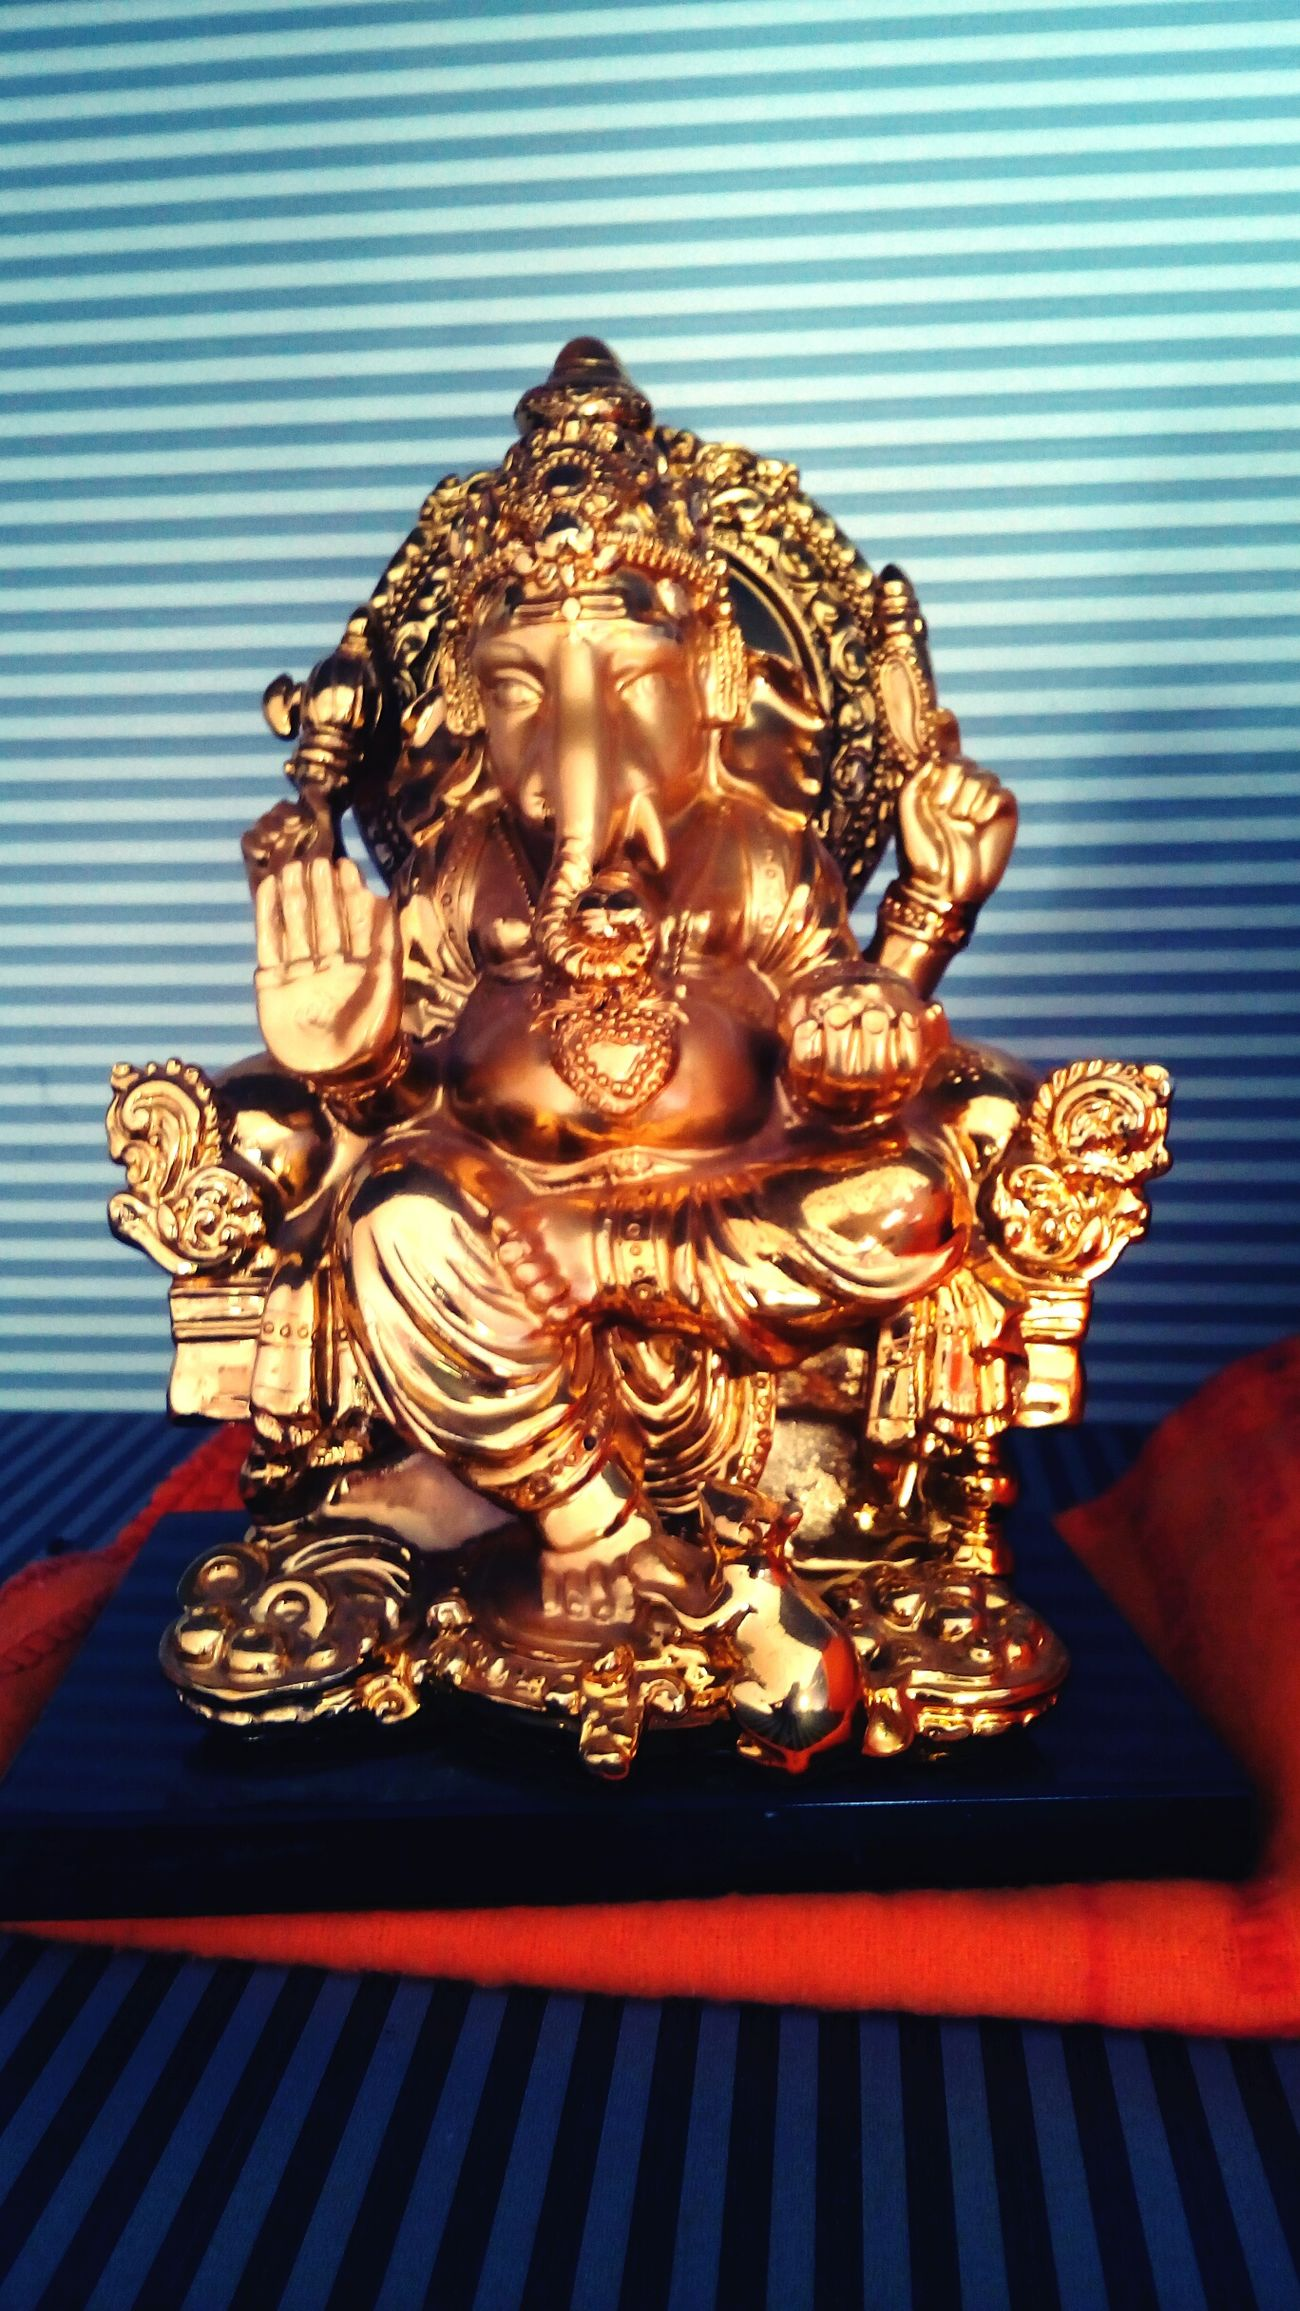 Small Statue Of Lord GANESHA Of HINDU RELIGION...